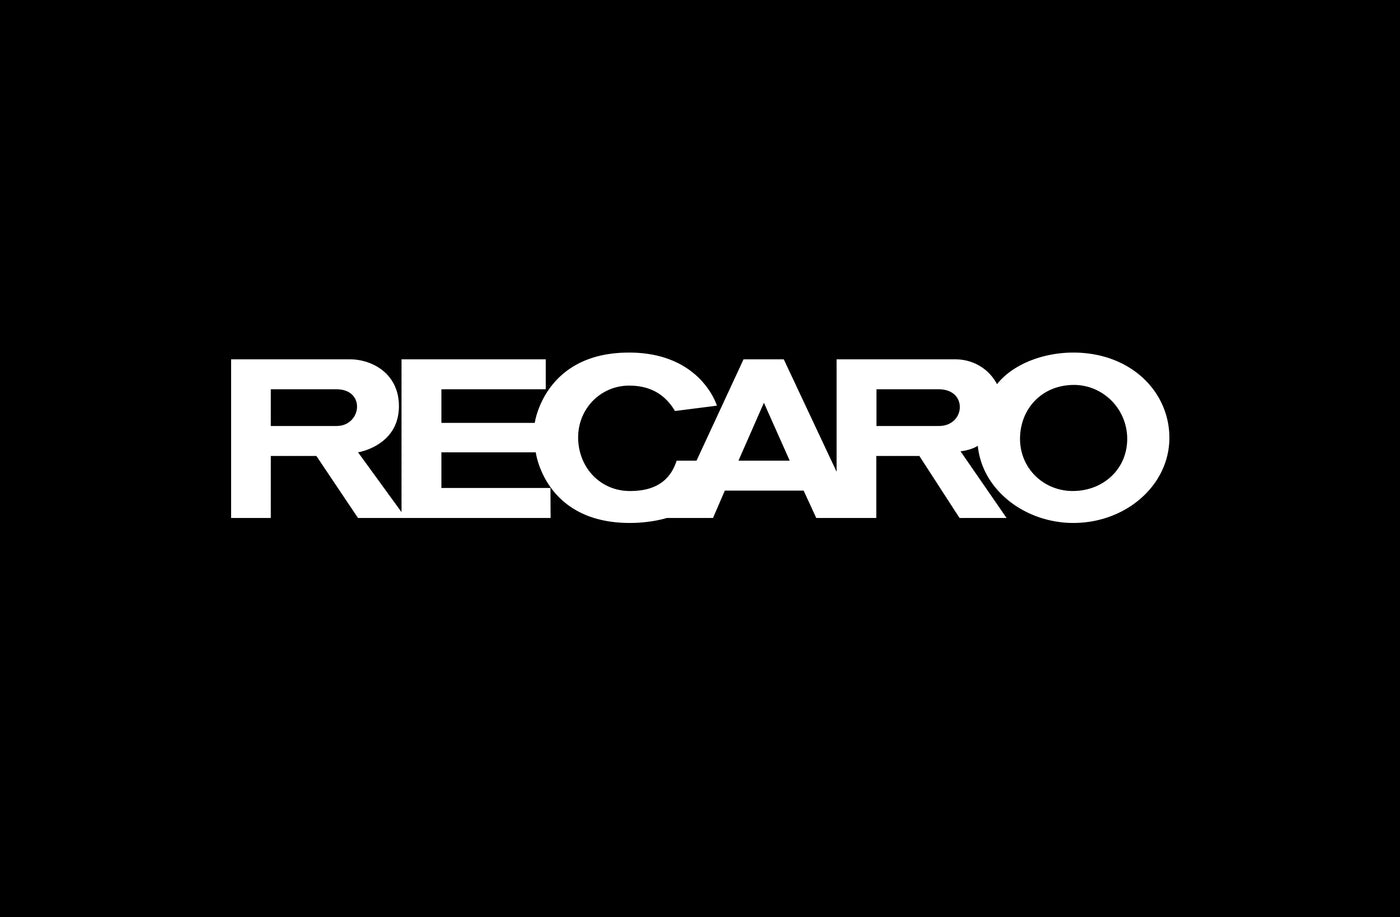 Recaro Holding and Artsana Group sign license agreement for premium child seats and strollers